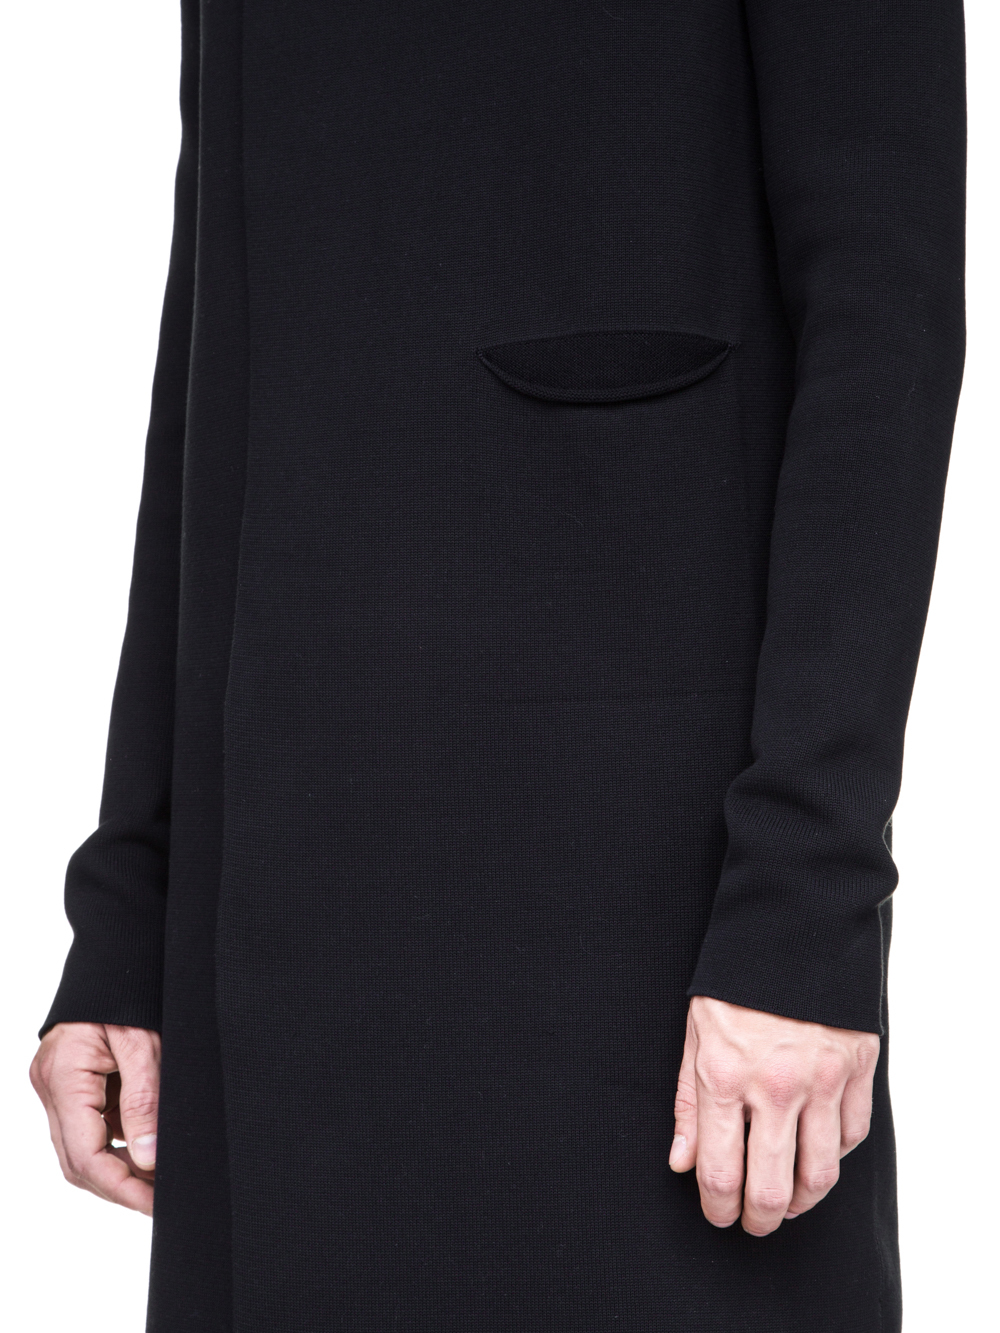 RICK OWENS OFF-THE-RUNWAY NARROW CARDIGAN WITH SLEEVES IN BLACK SCULPTURE KNIT